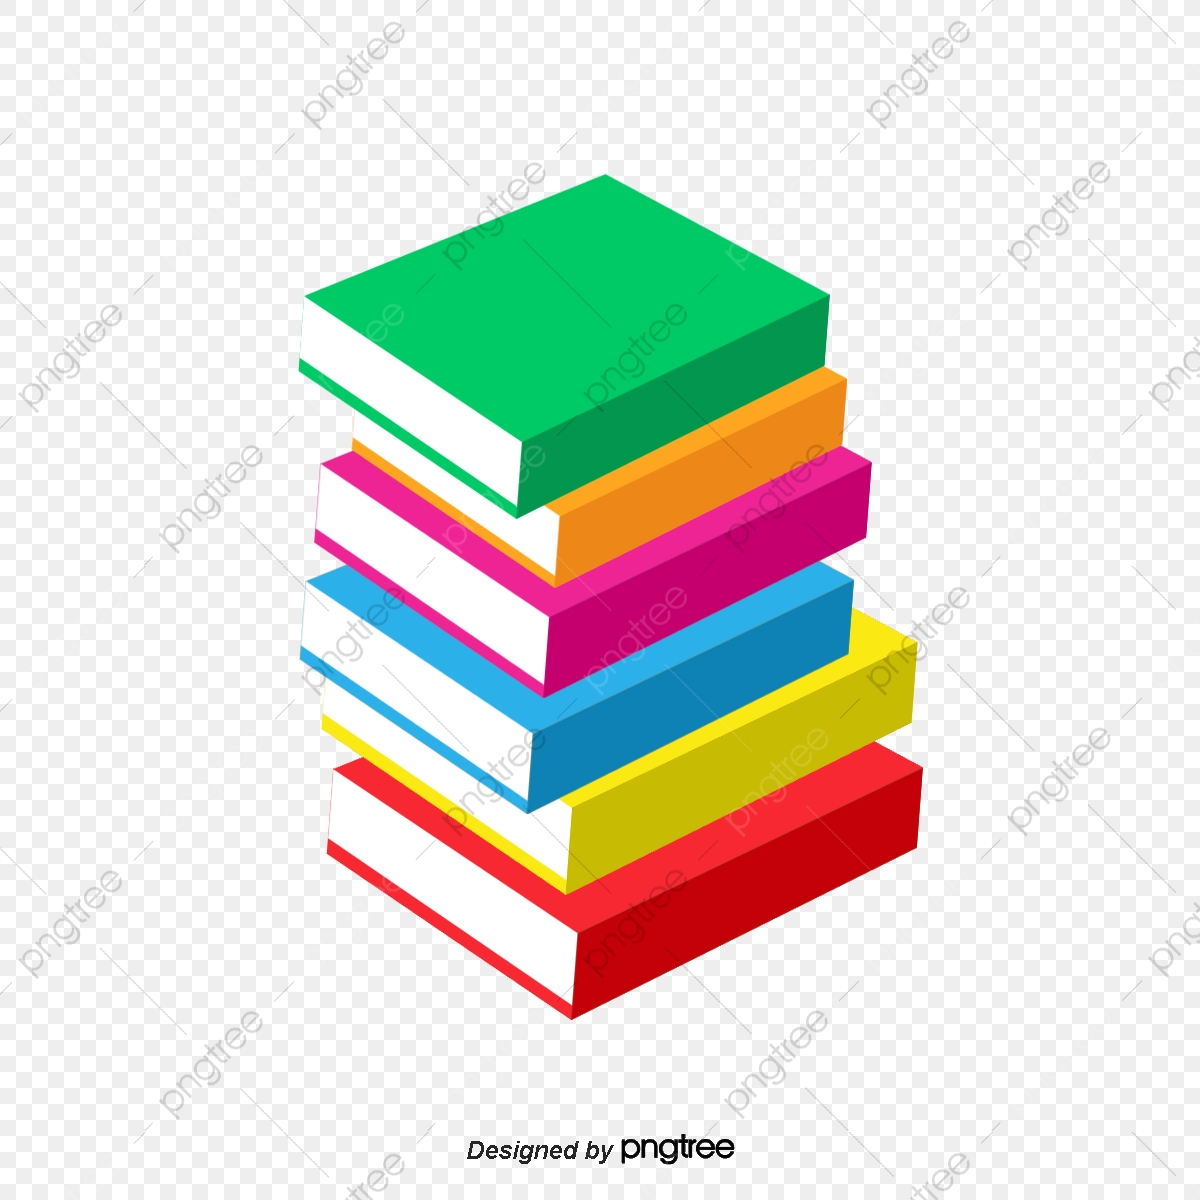 Color Book, Book Clipart, Colour, Textbook PNG and Vector.